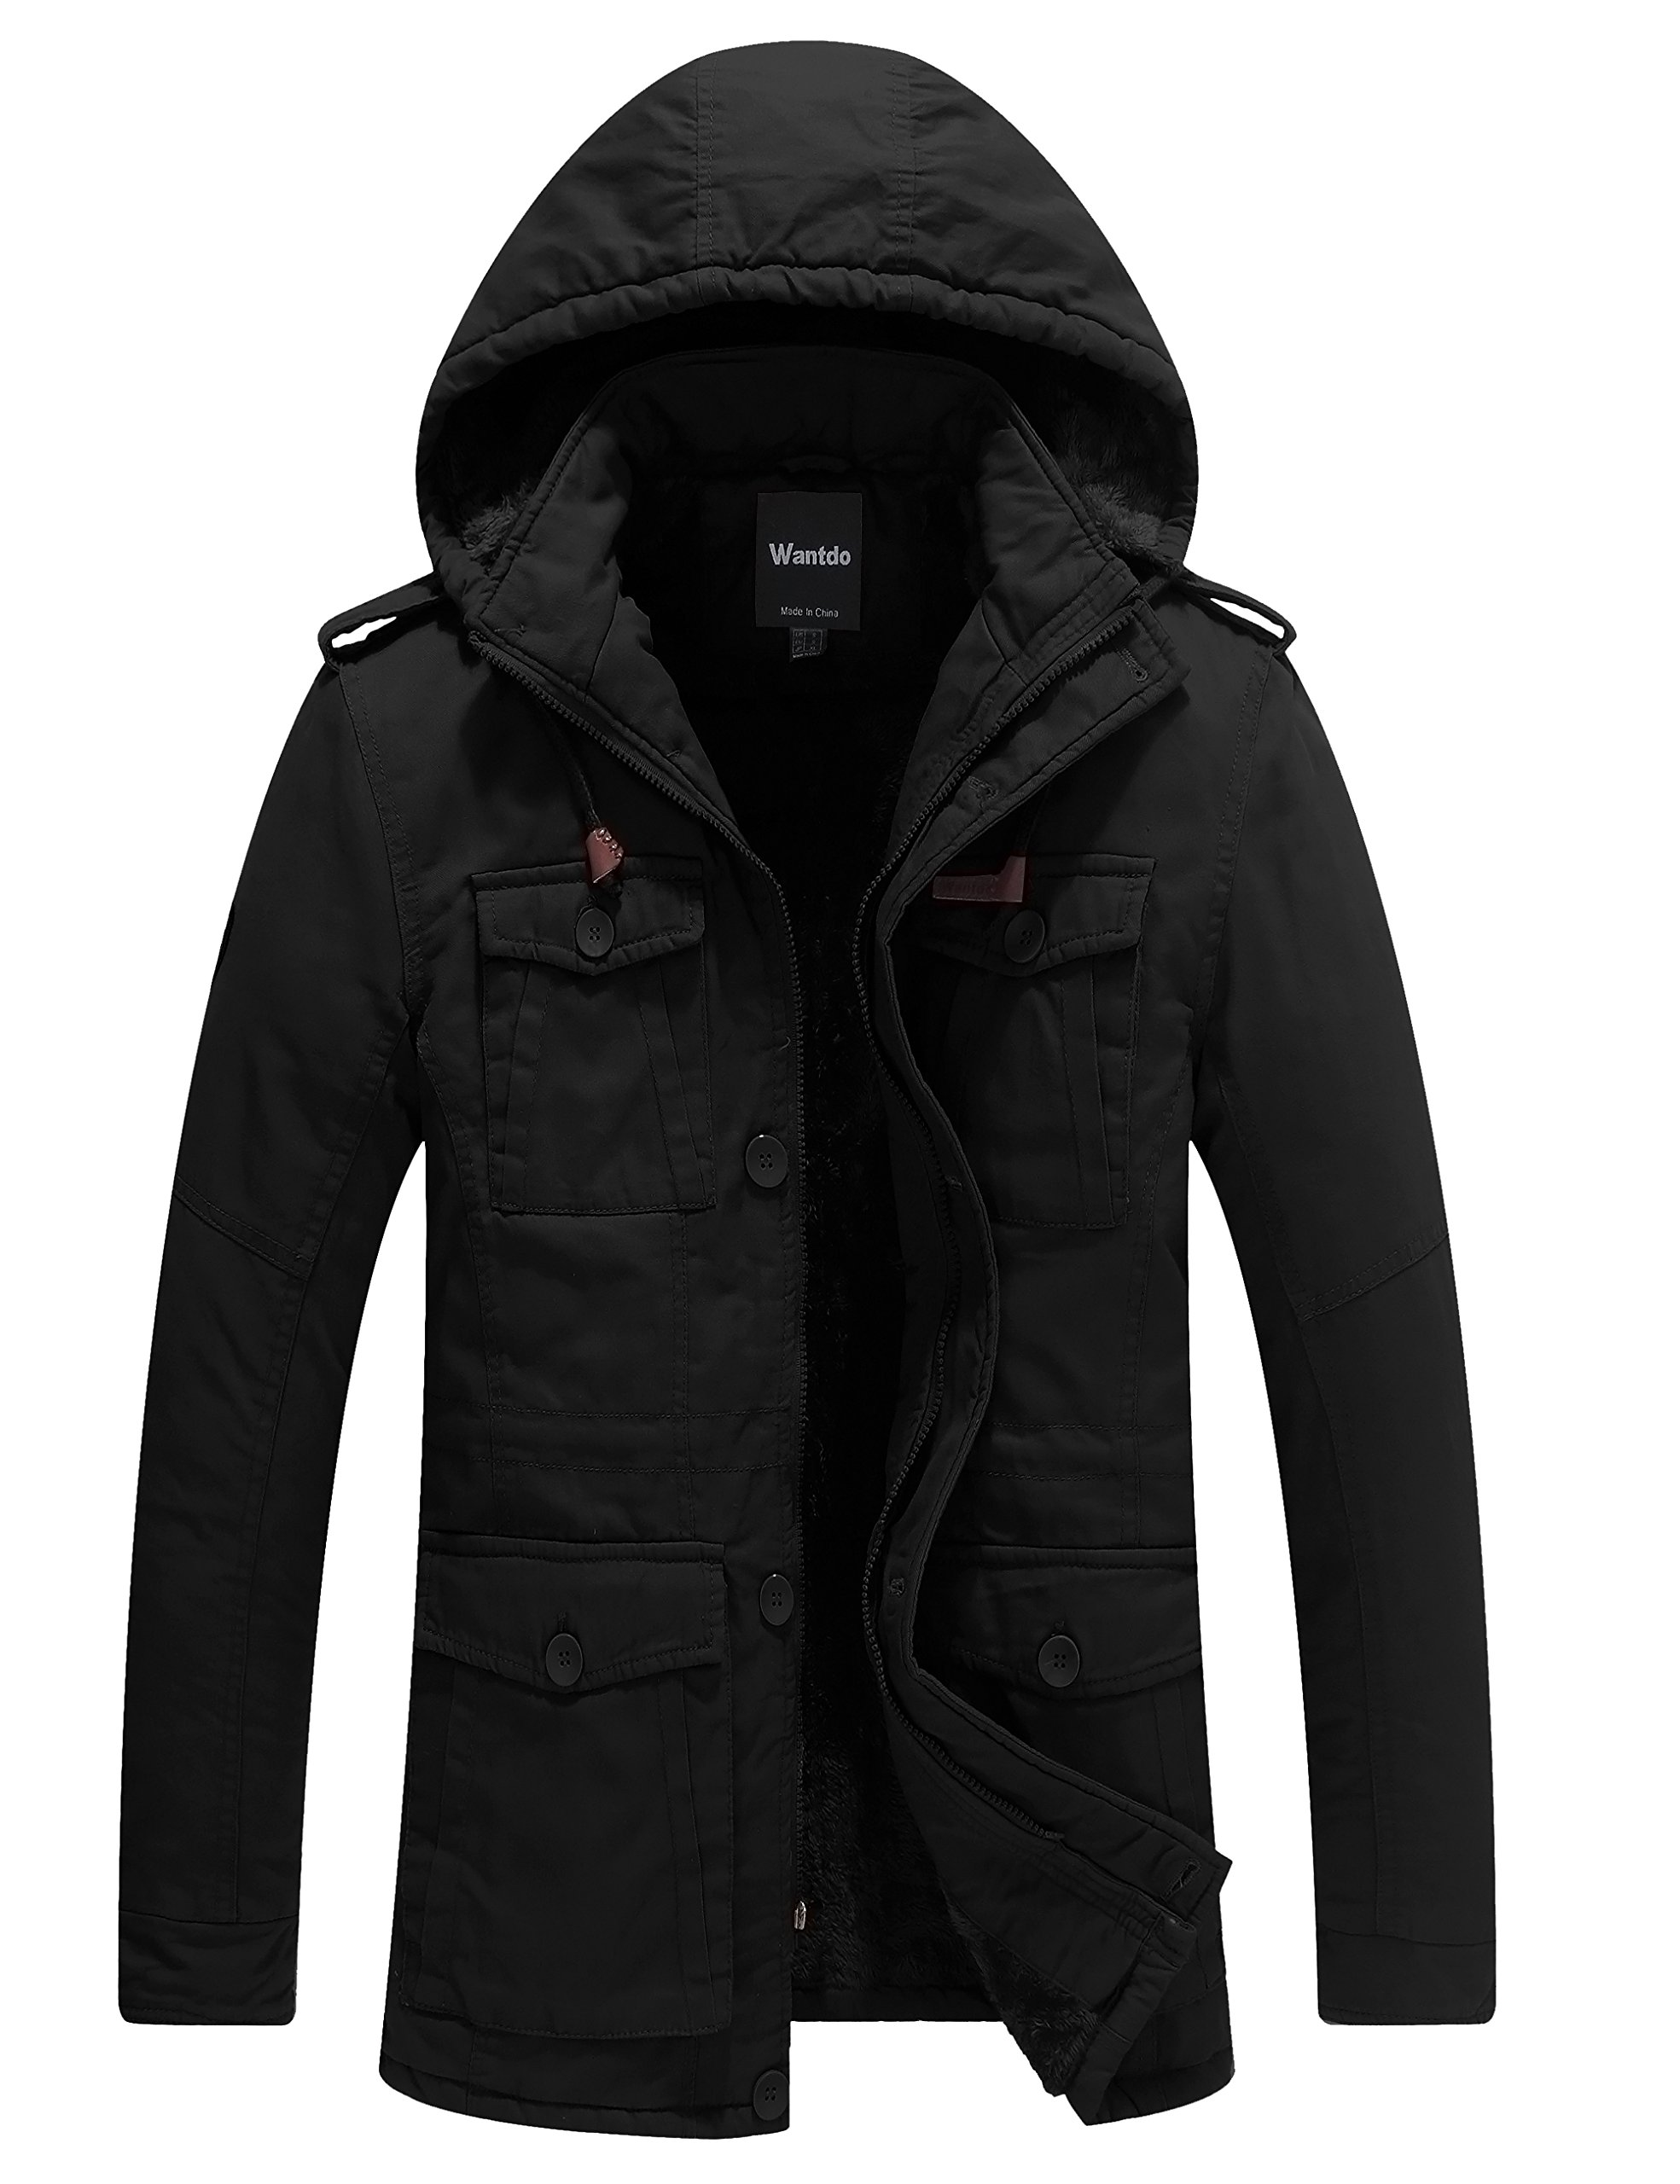 Wantdo Men's Winter Thicken Outwear Coat With Removable Hood (Black, Medium)